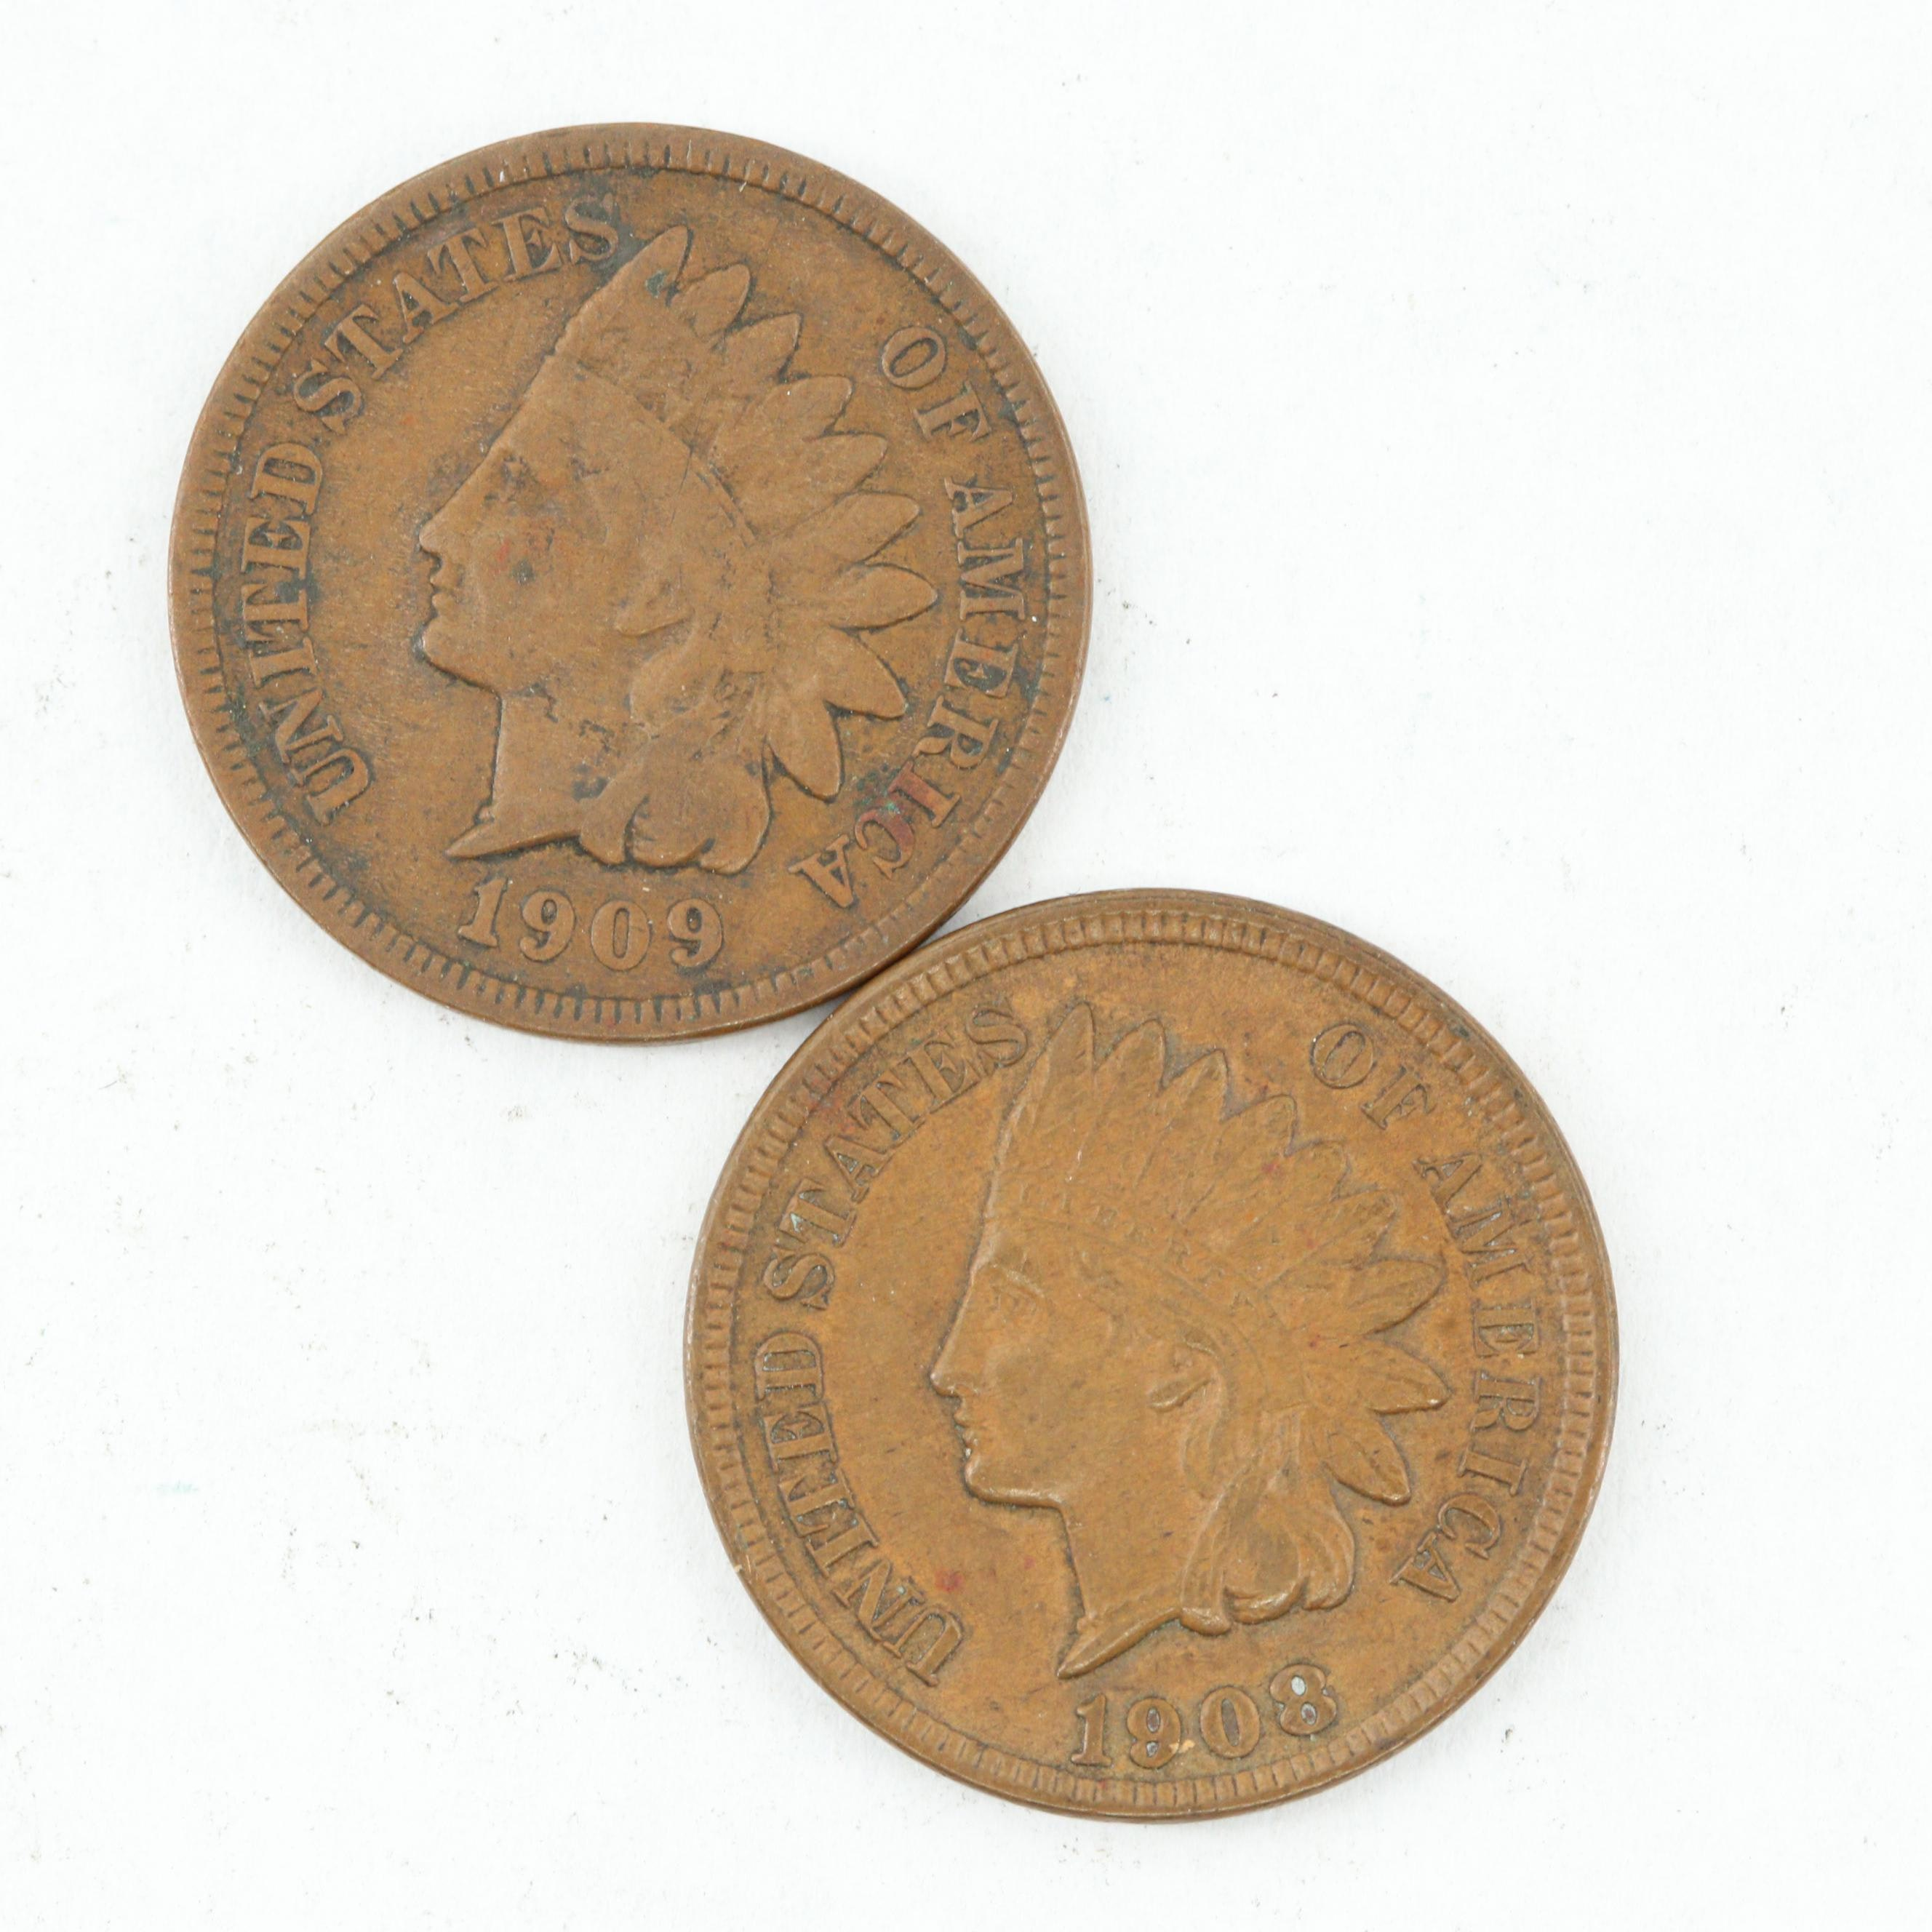 1908 and 1909 Indian Head Cents